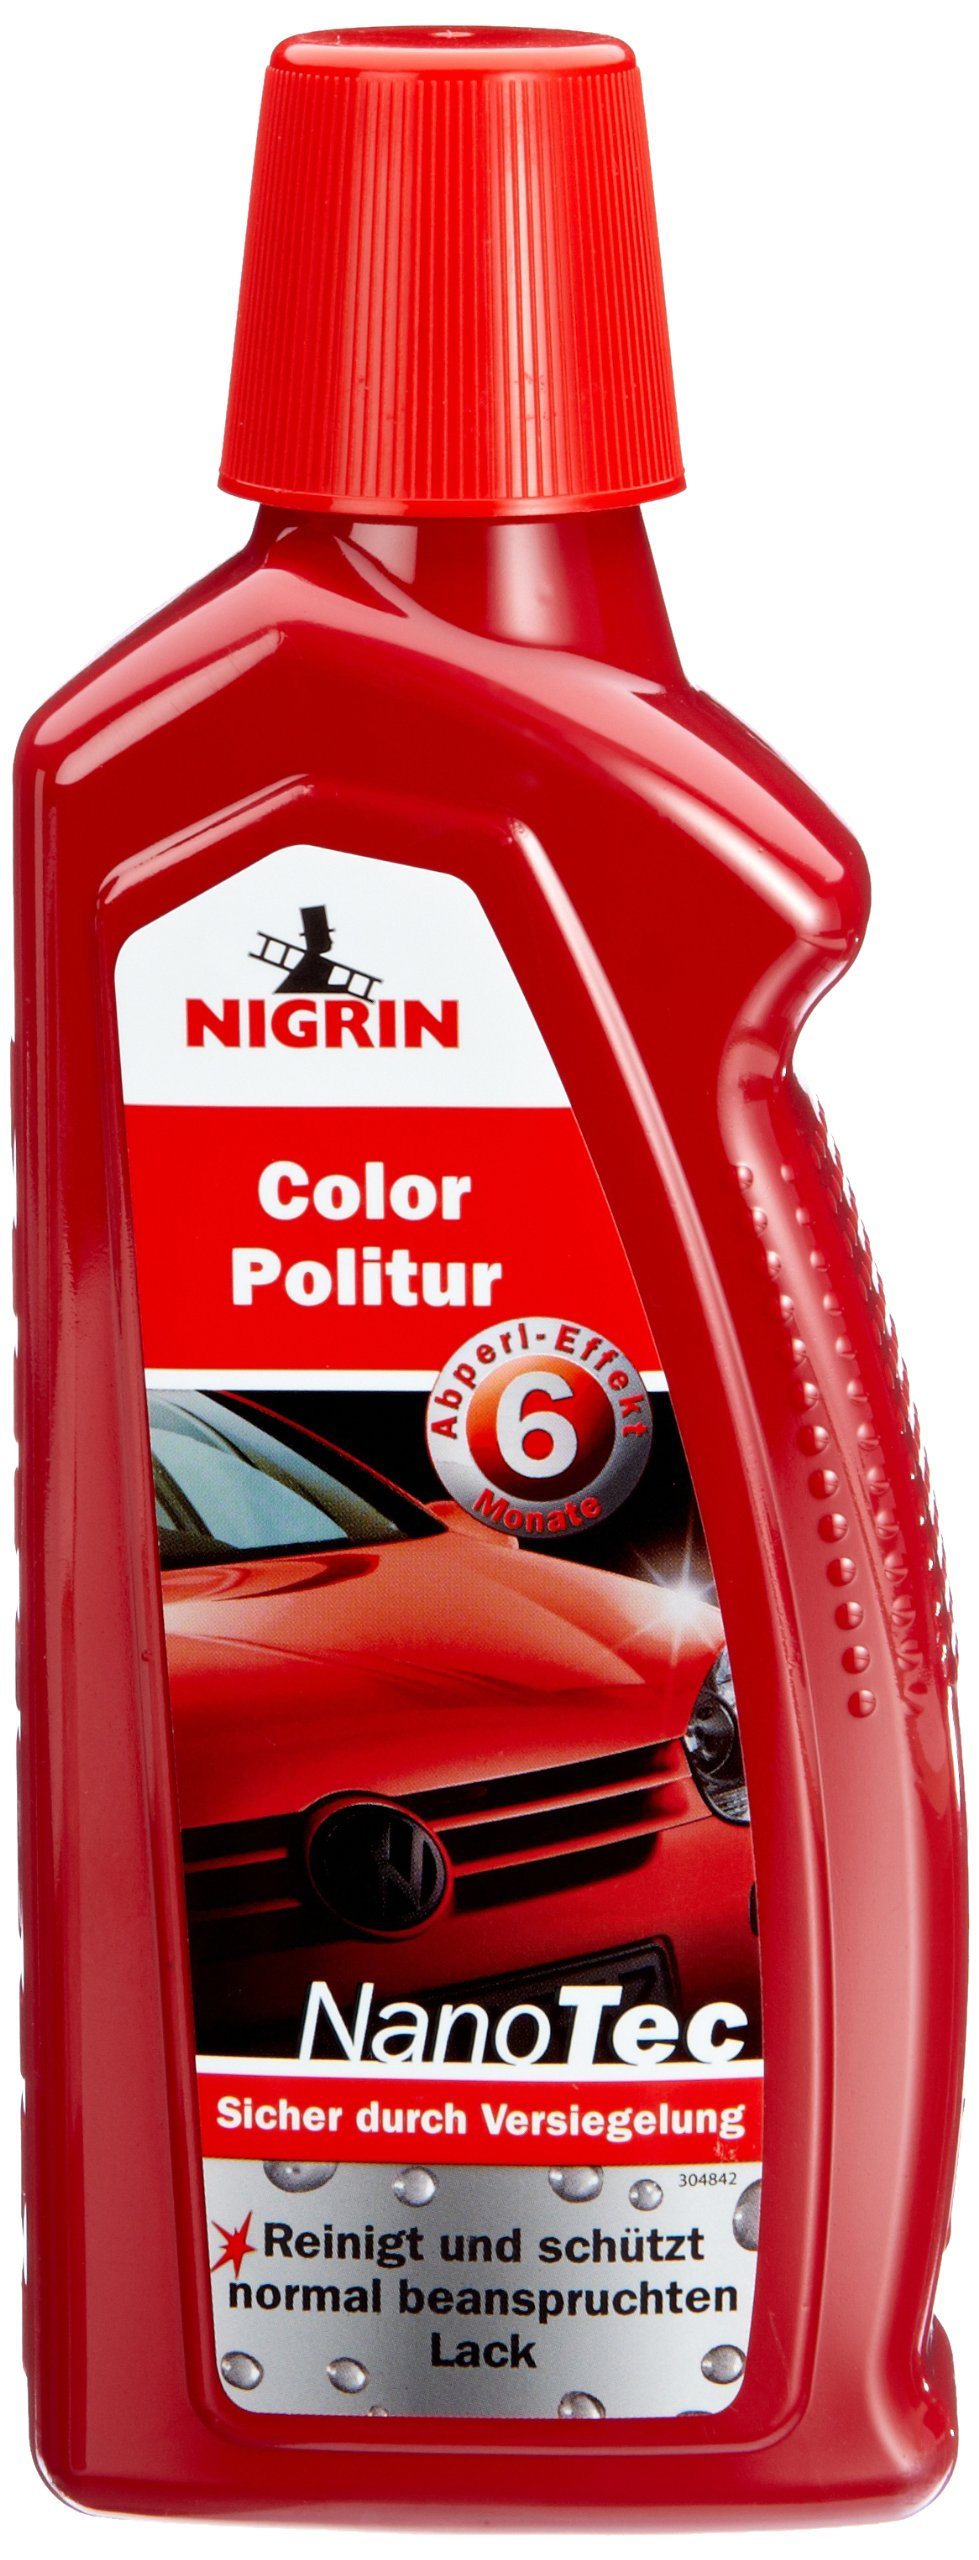 NIGRIN 73871 NanoTec Color-Politur Rot 500ml von Nigrin